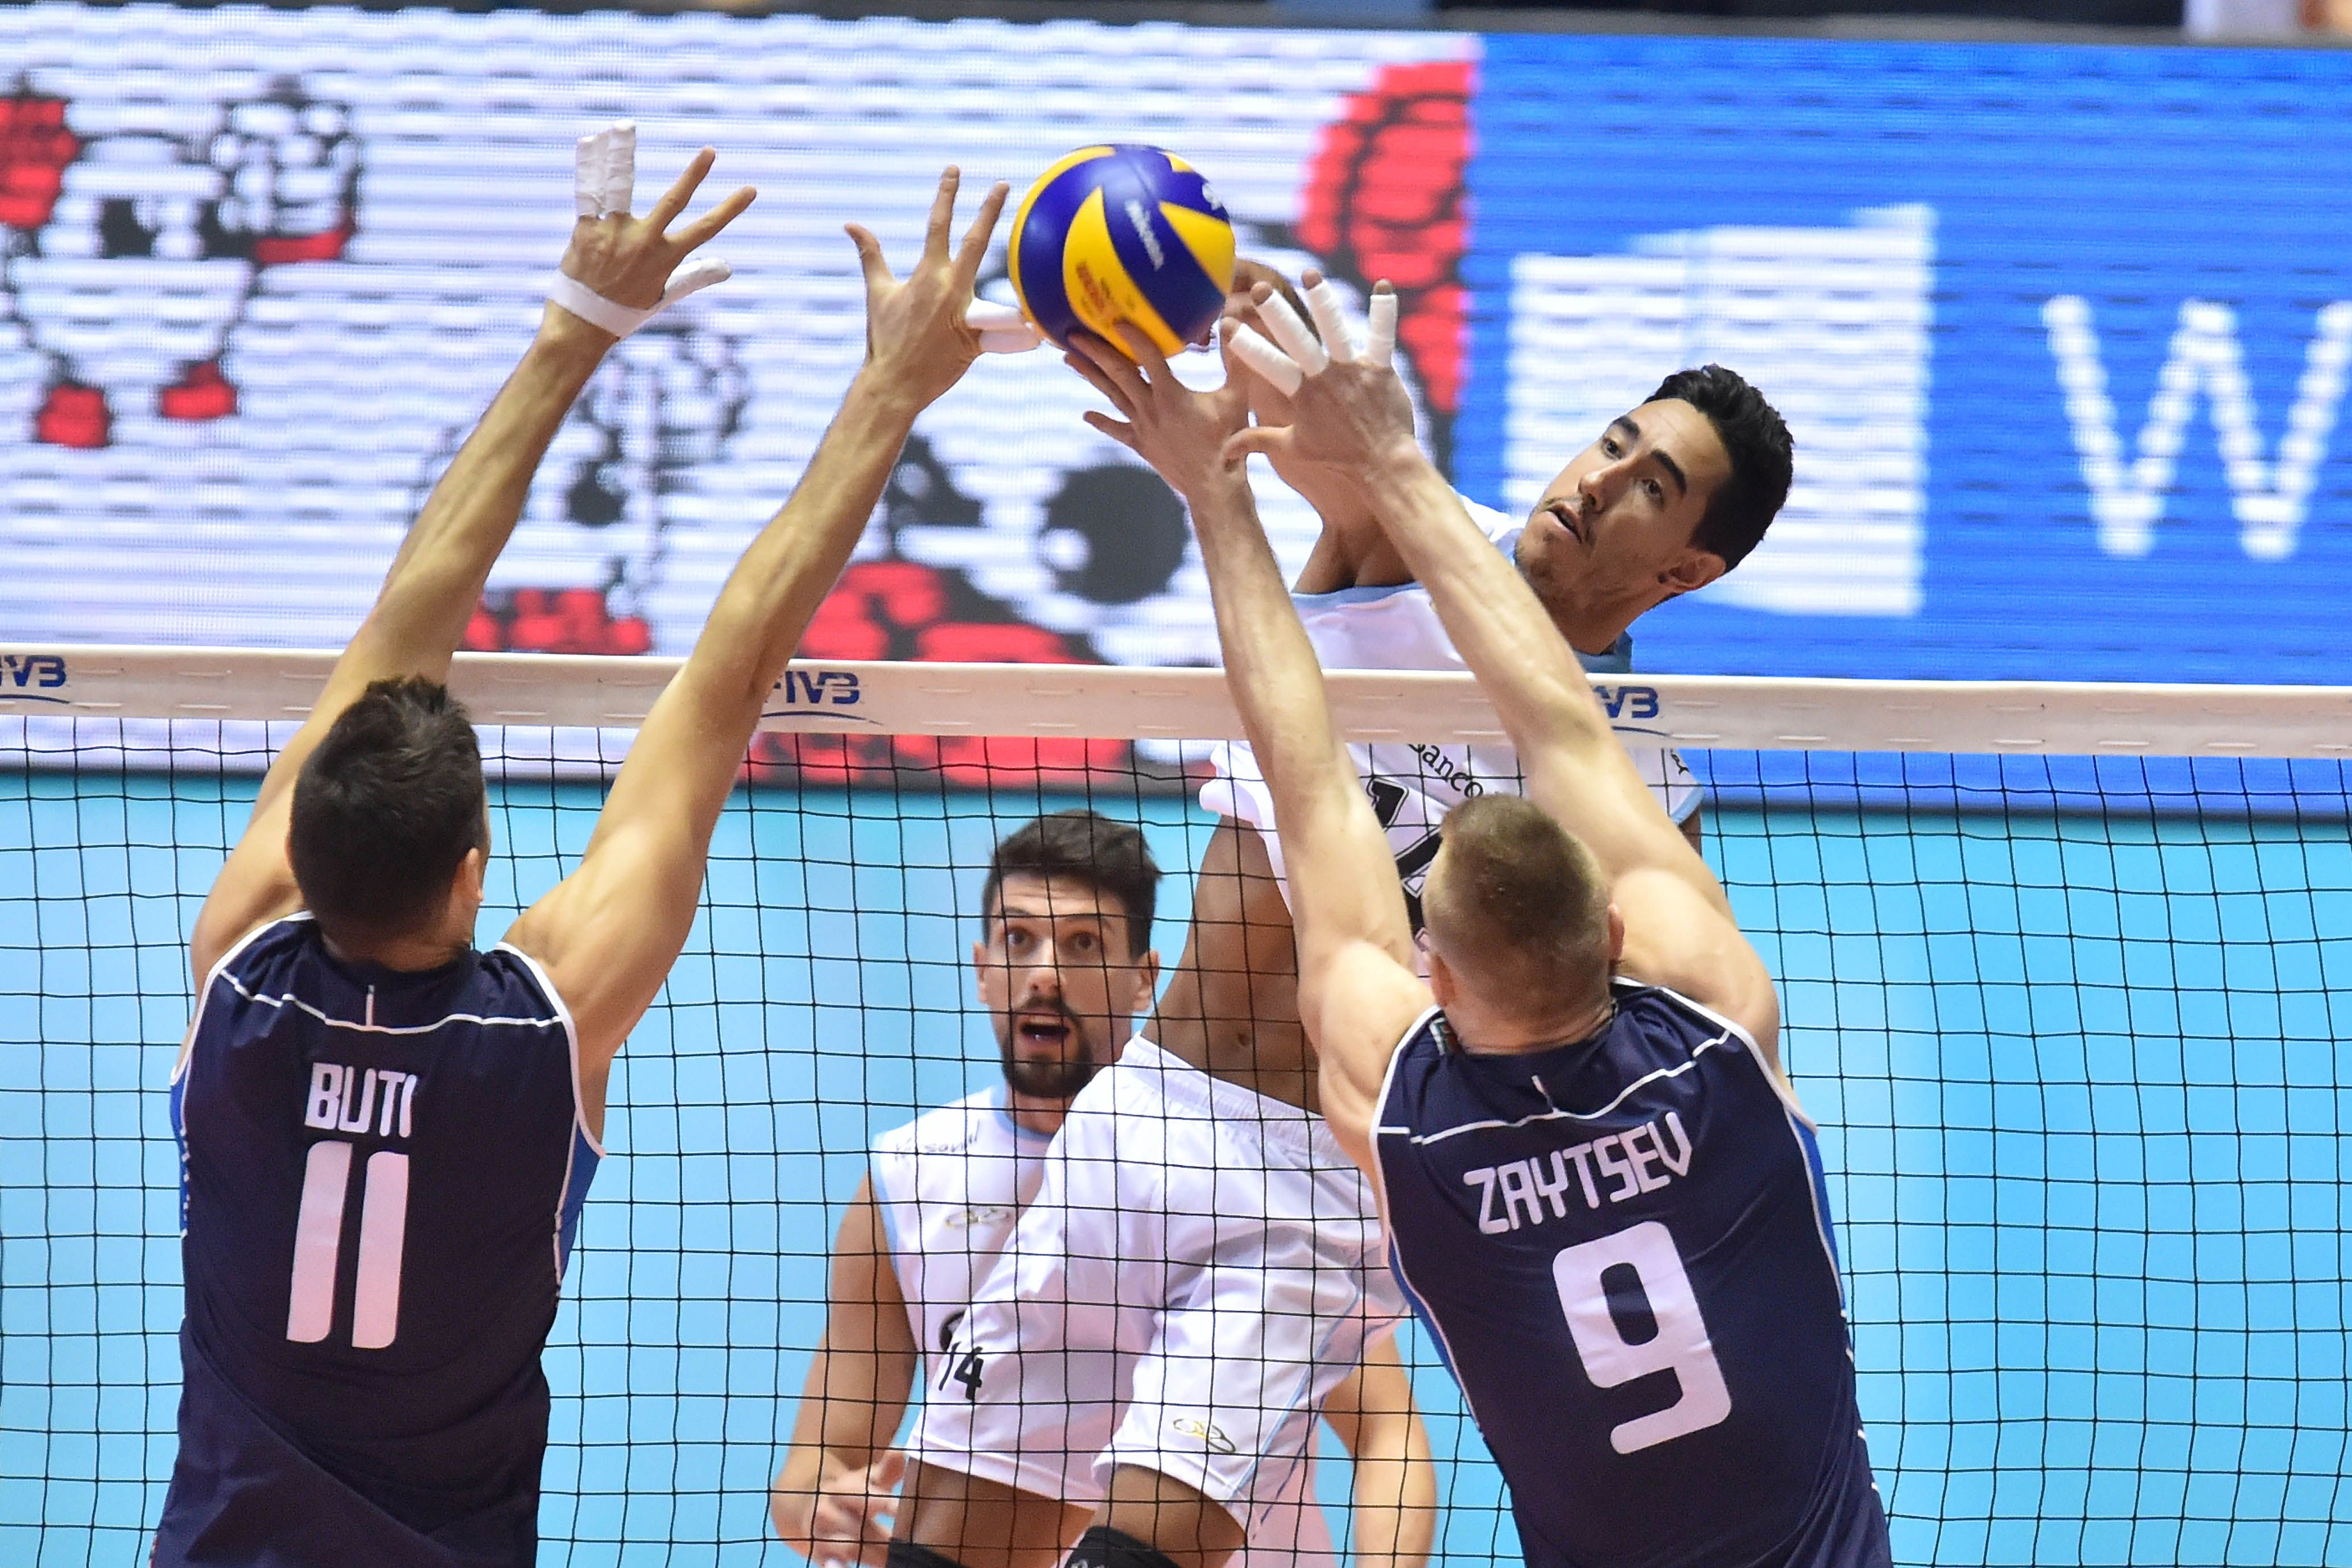 Italy S Ivan Zaytsev And Simone Buti Block Against Pablo Crero S Arg Spike In 2020 Volleyball Image Pablo